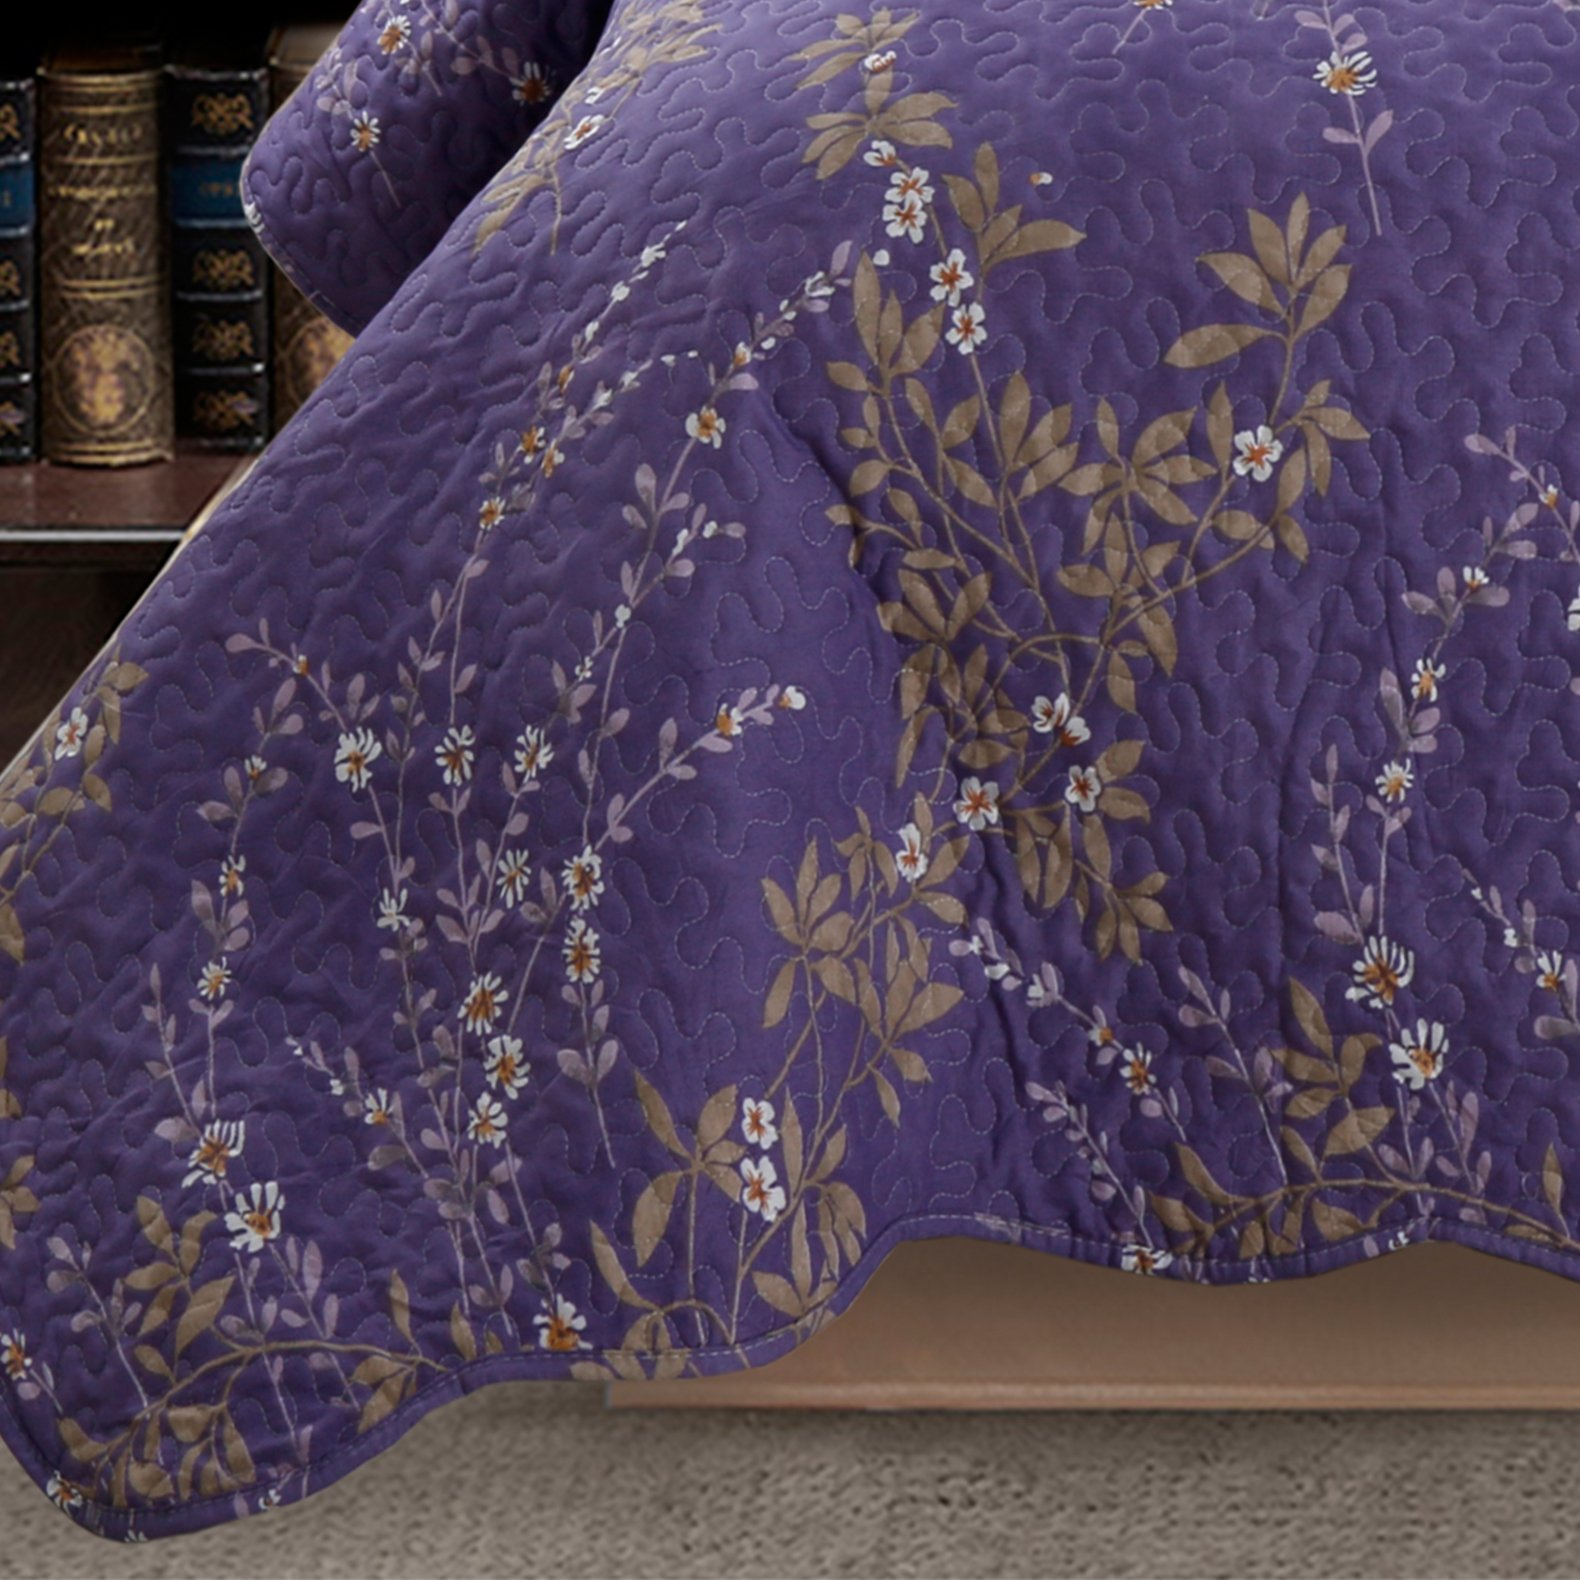 Kasentex Country-Chic Printed Pre-Washed Set. Microfiber Fabric Floral Design Quilt + 2 Shams, KING 104X90+20X36 X2, Purple by Kasentex (Image #2)